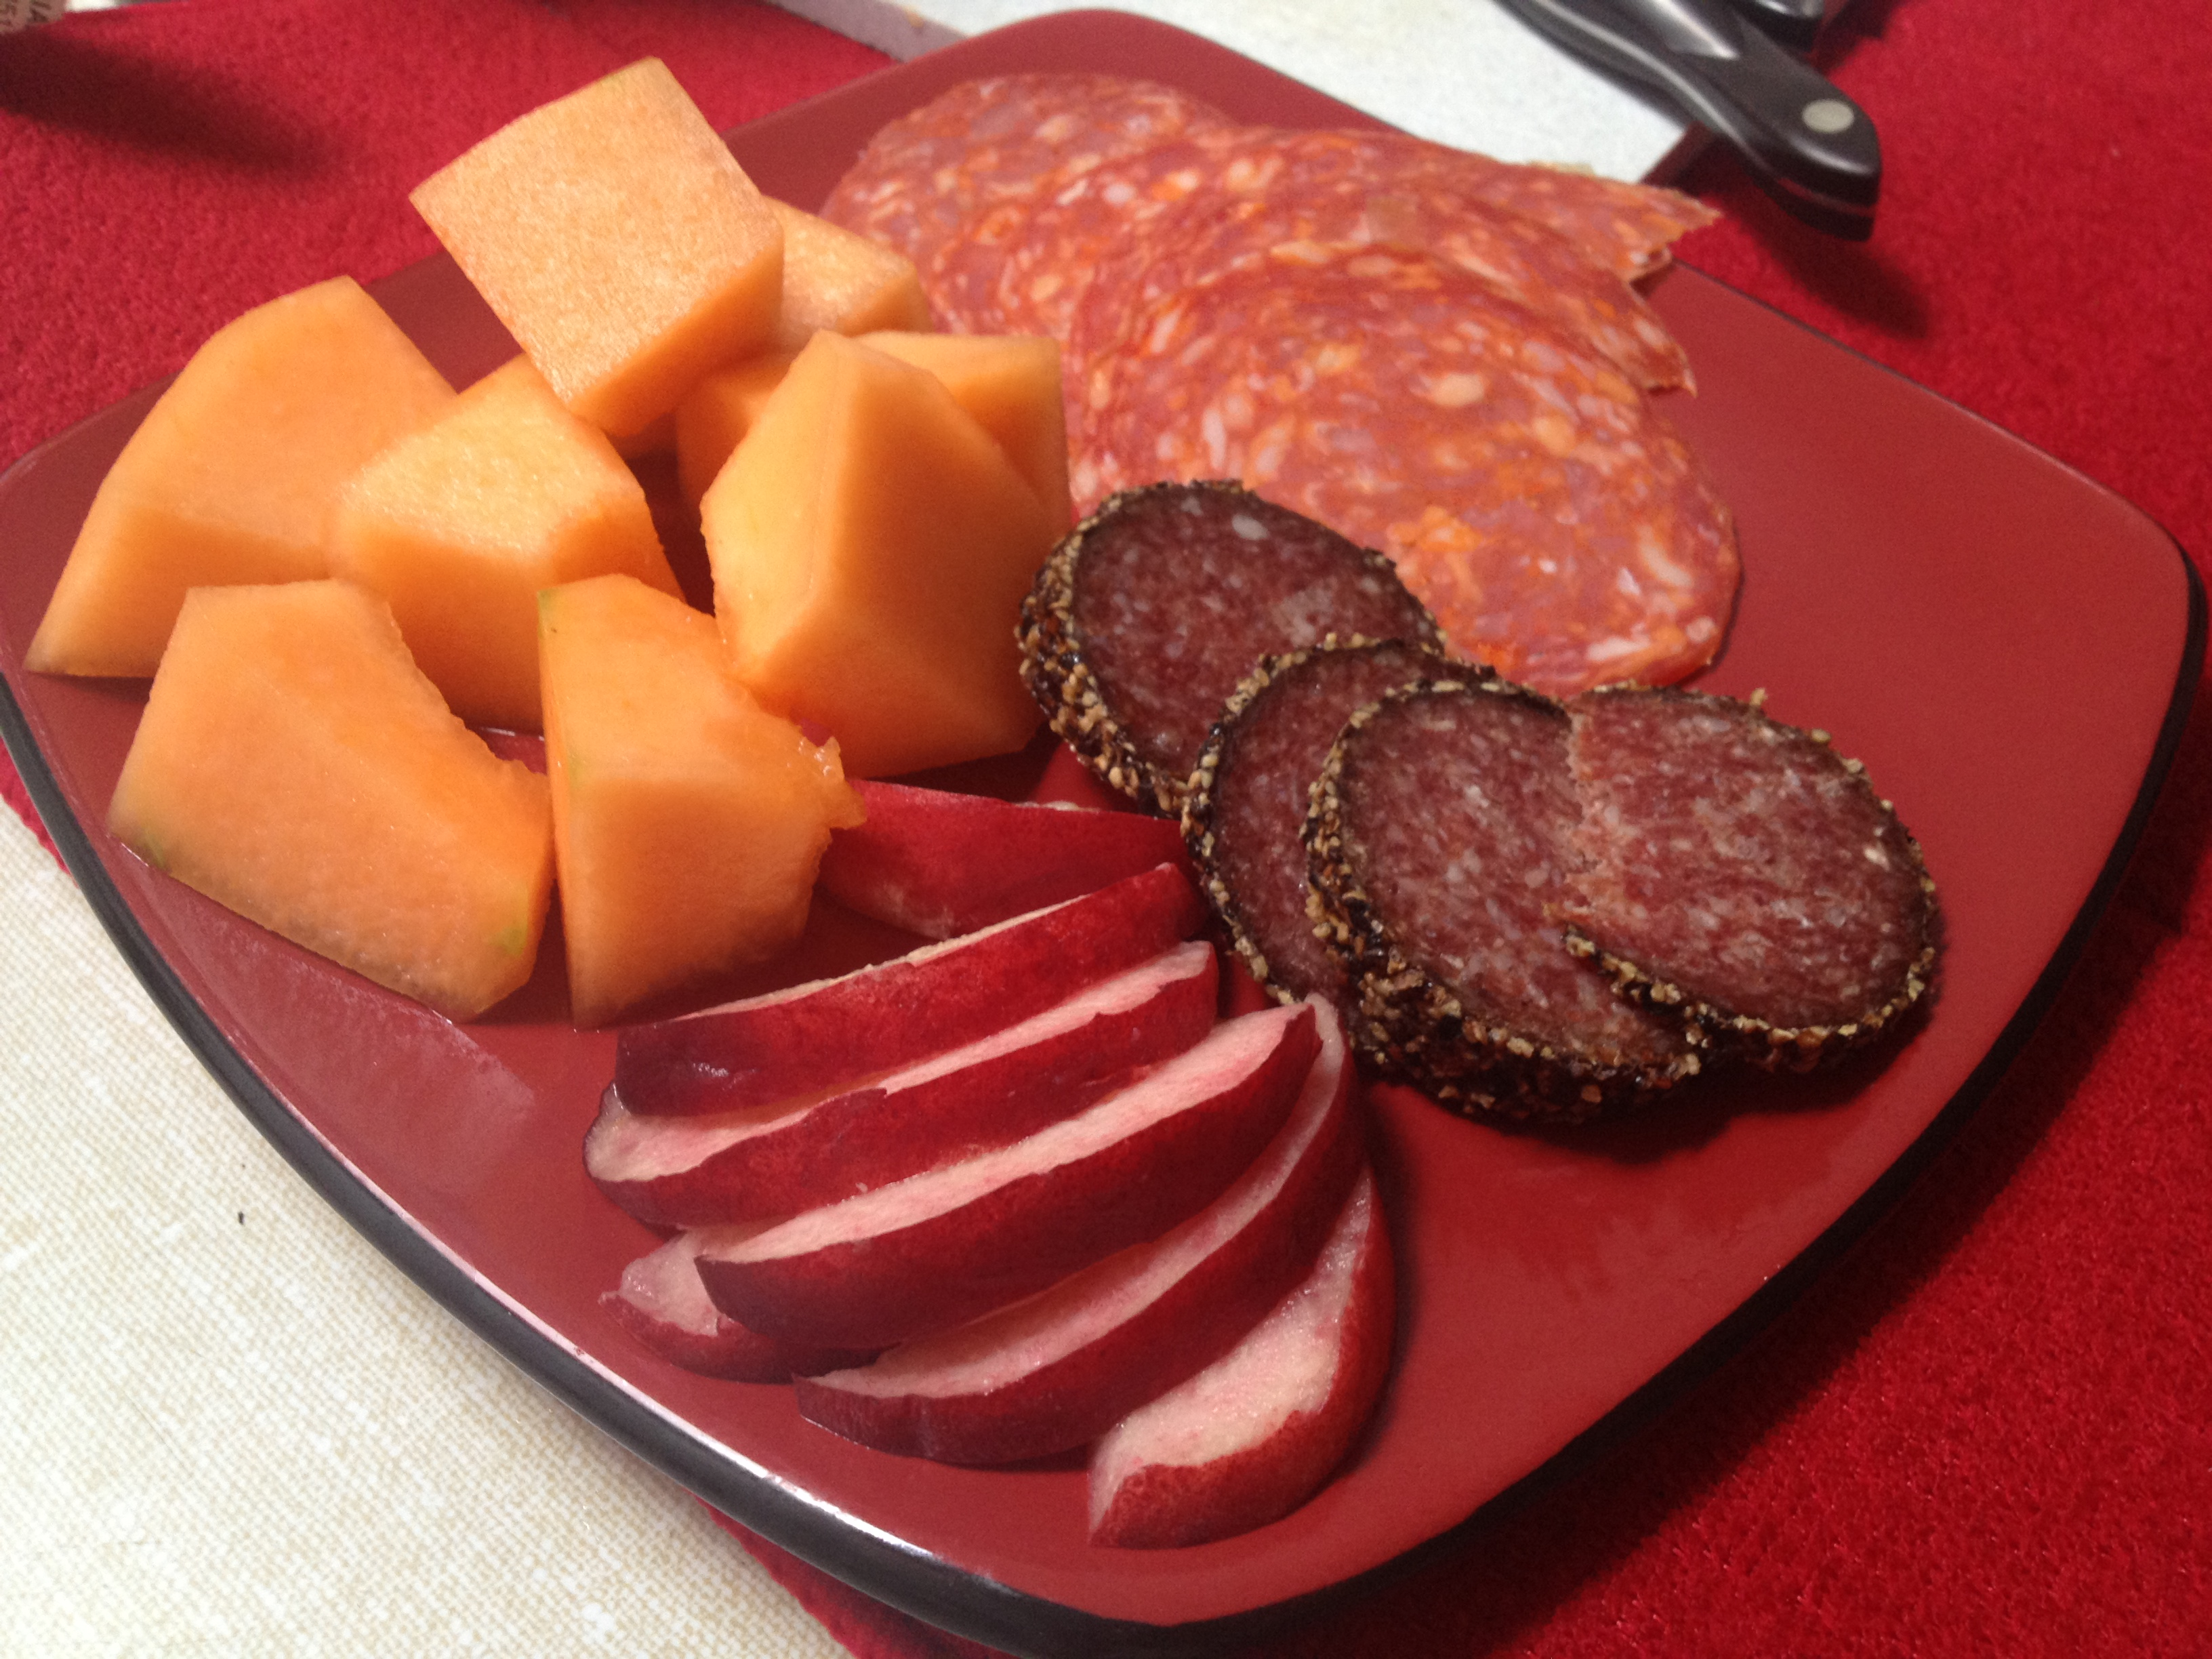 Marketed Meal - Ripe sweet canteloupe, white peaches, mennonite sausage. Delish!